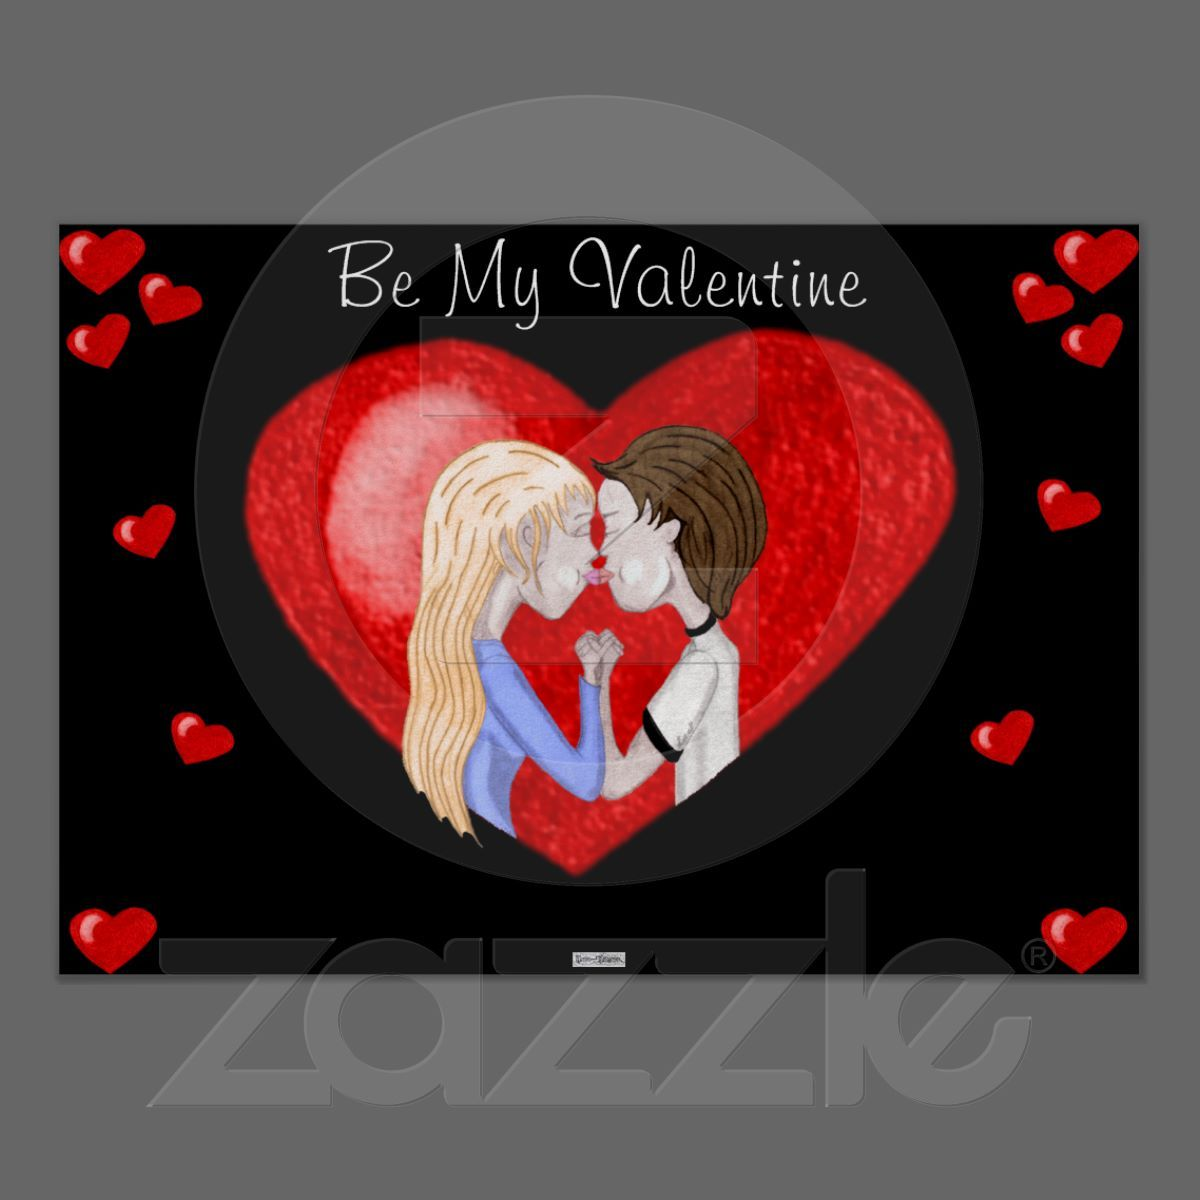 Kissing Couple In Heart Color Pencil Sketch Poster Prints Heart Poster